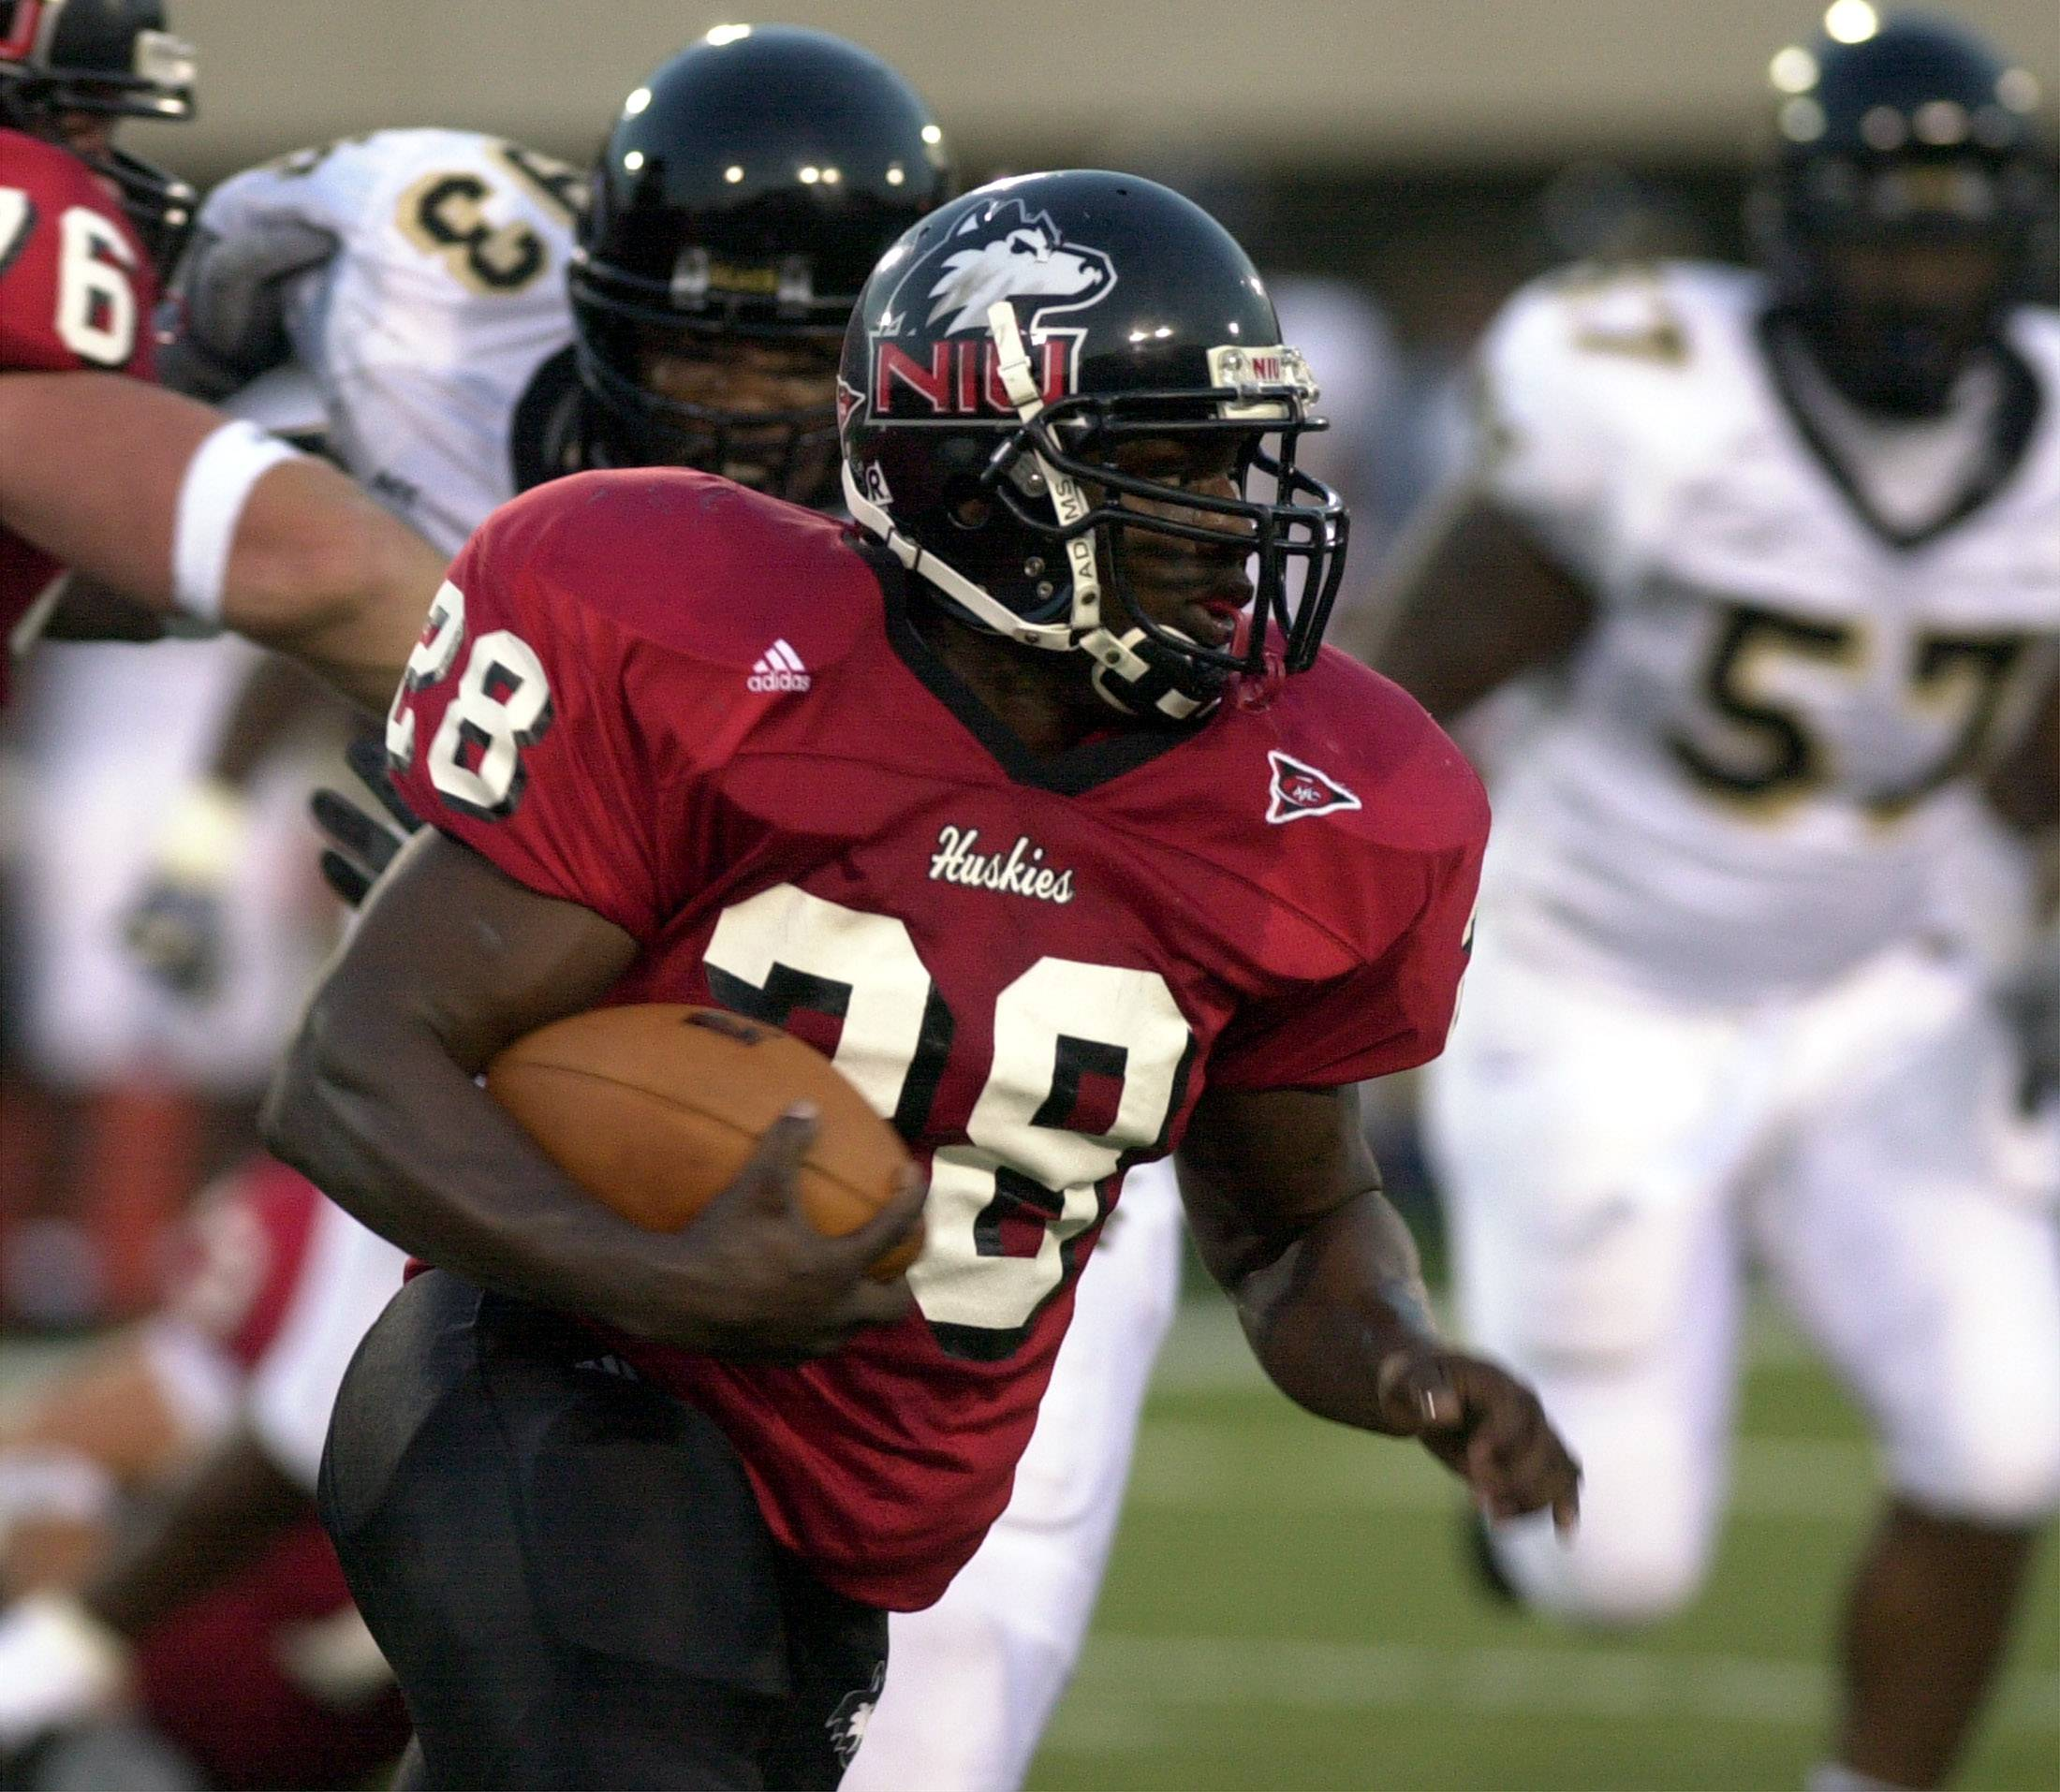 Former Northern Illinois running back Thomas Hammock, shown here against Wake Forest in 2002, is taking over at his alma mater after spending 16 seasons as a college and NFL assistant.